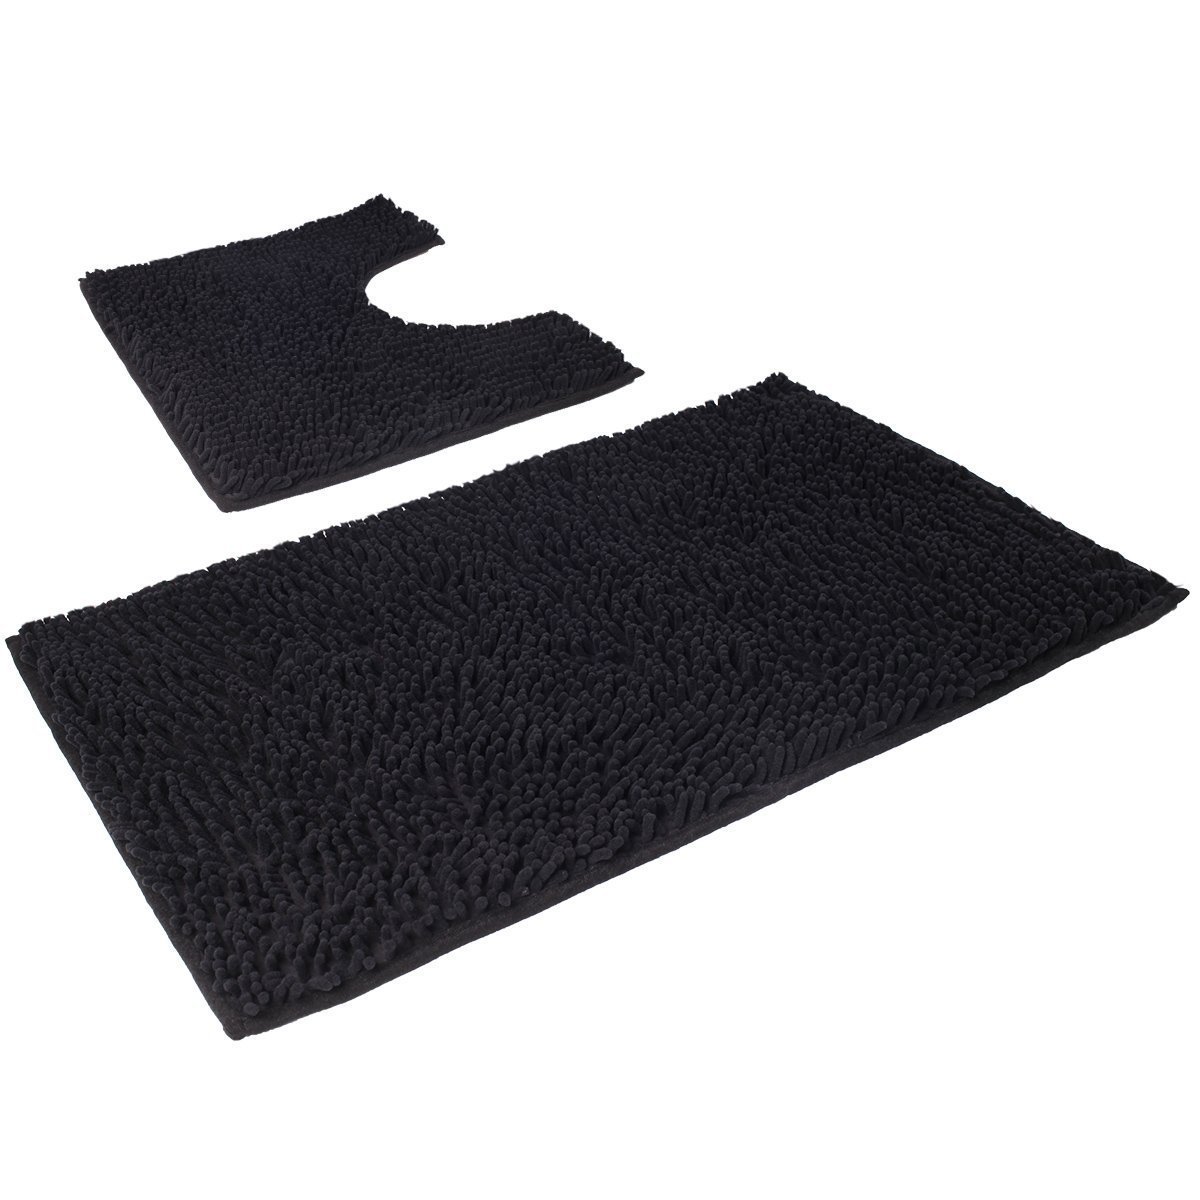 VDOMUS Microfiber Bathroom Contour Rugs Combo, Set of 2 Soft Shaggy Non Slip Bath Shower Mat and U-shaped Toilet Floor Rug (Black)